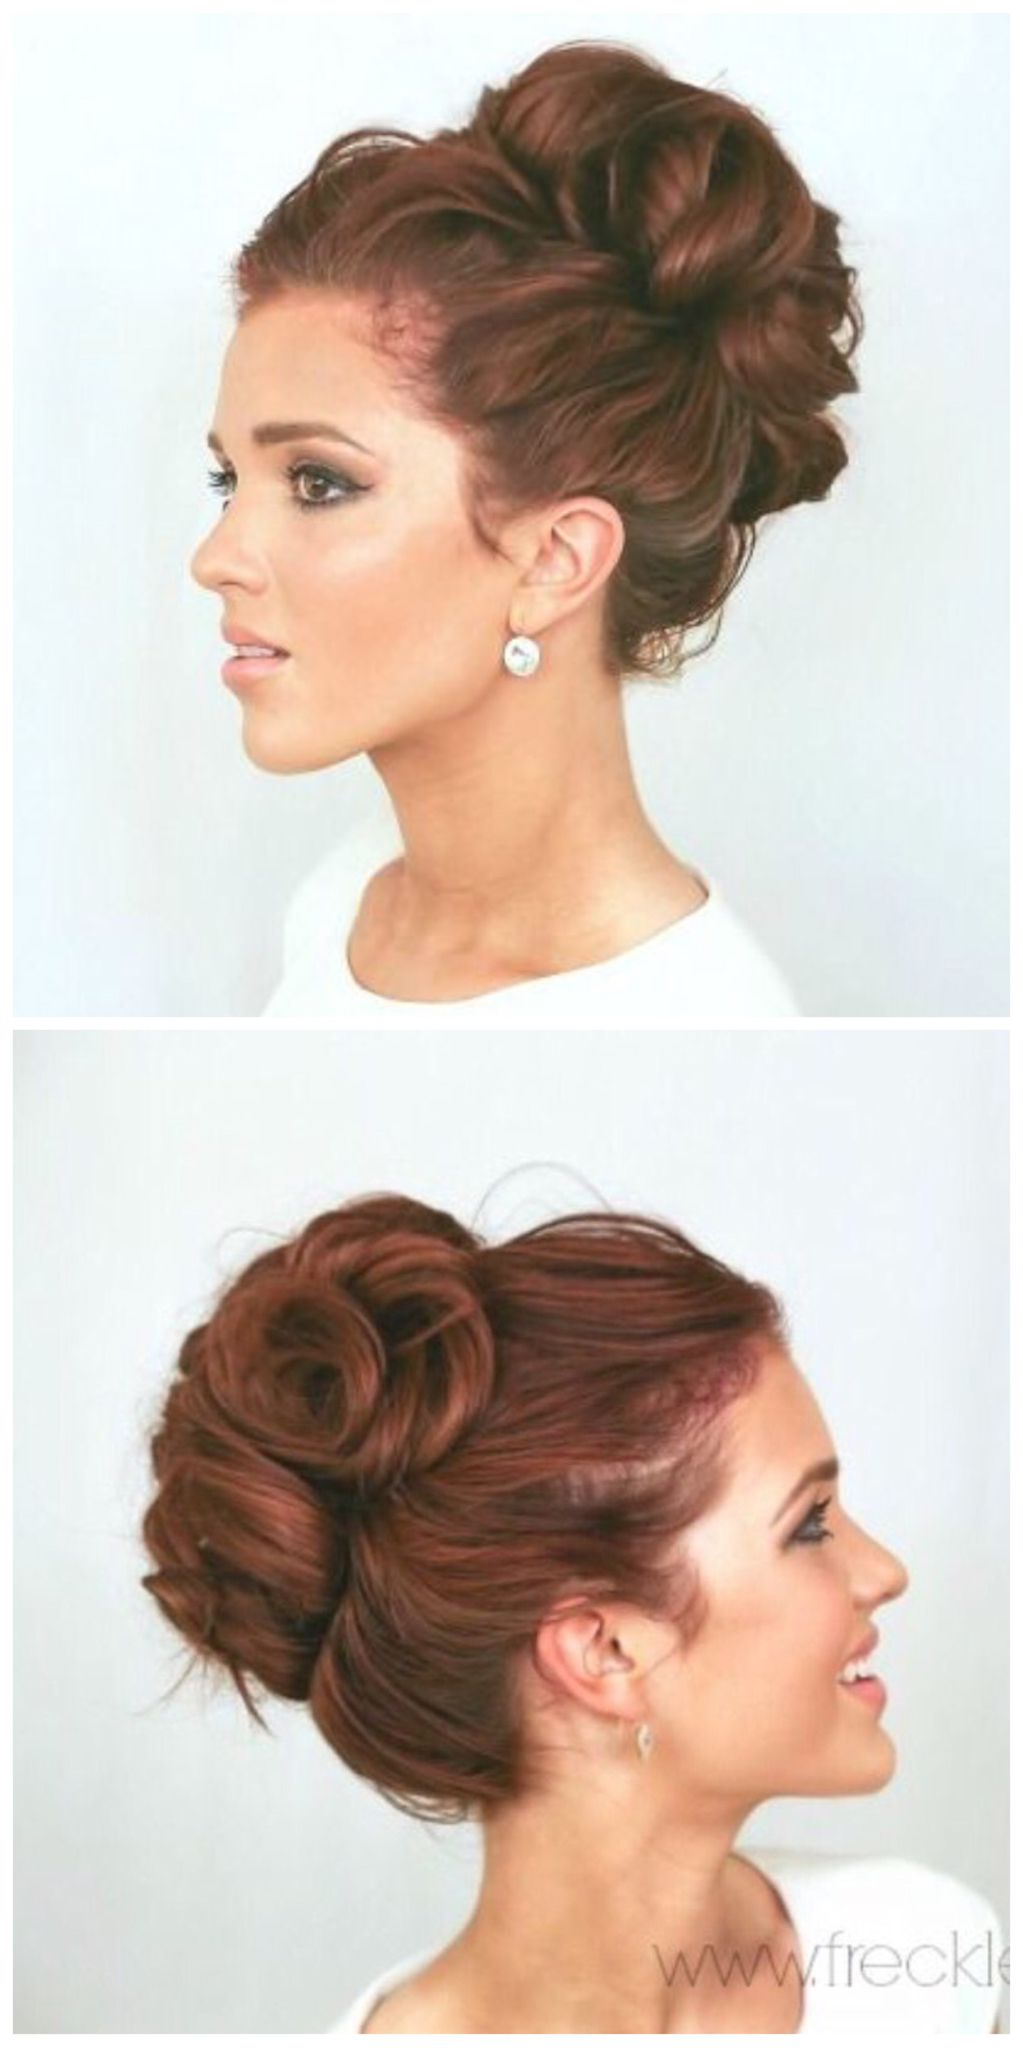 wedding hairstyles | wedding hairstyles | wedding bun